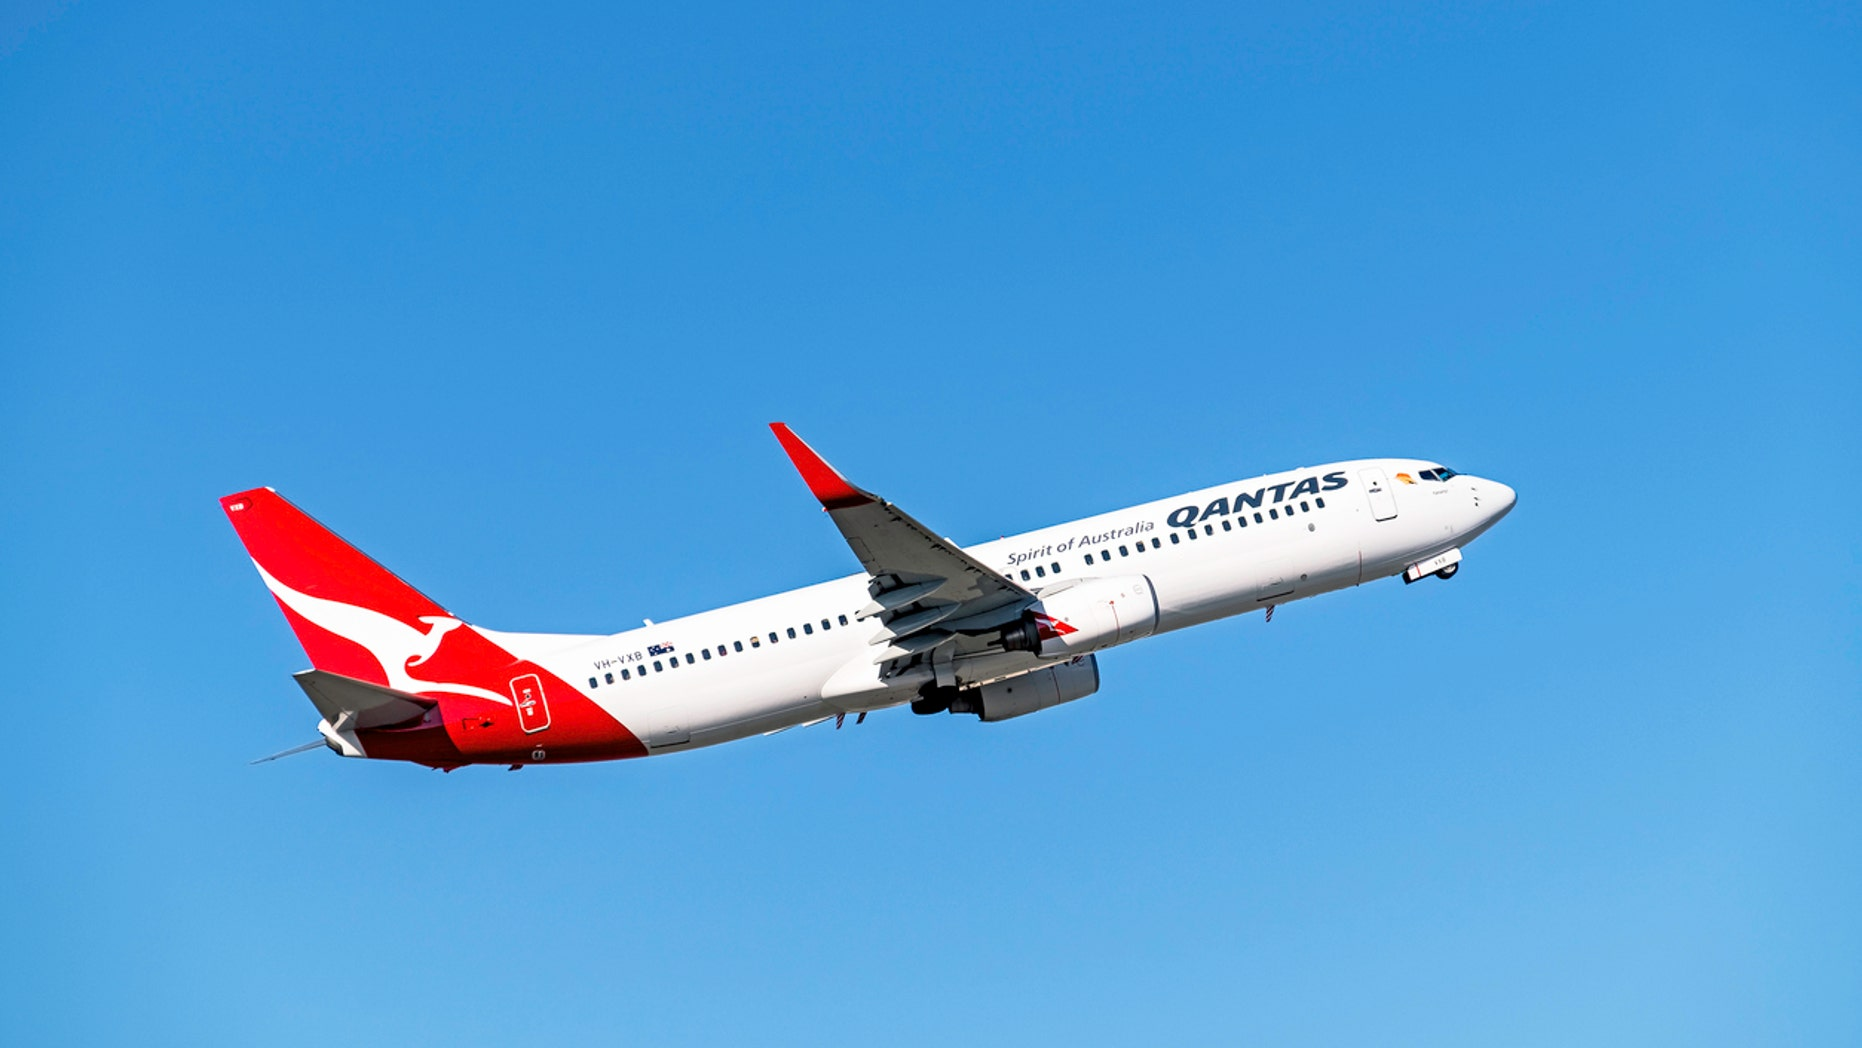 The CEO of Qantas Airlines reportedly mused that cargo hold could prove a valuable new cabin class.